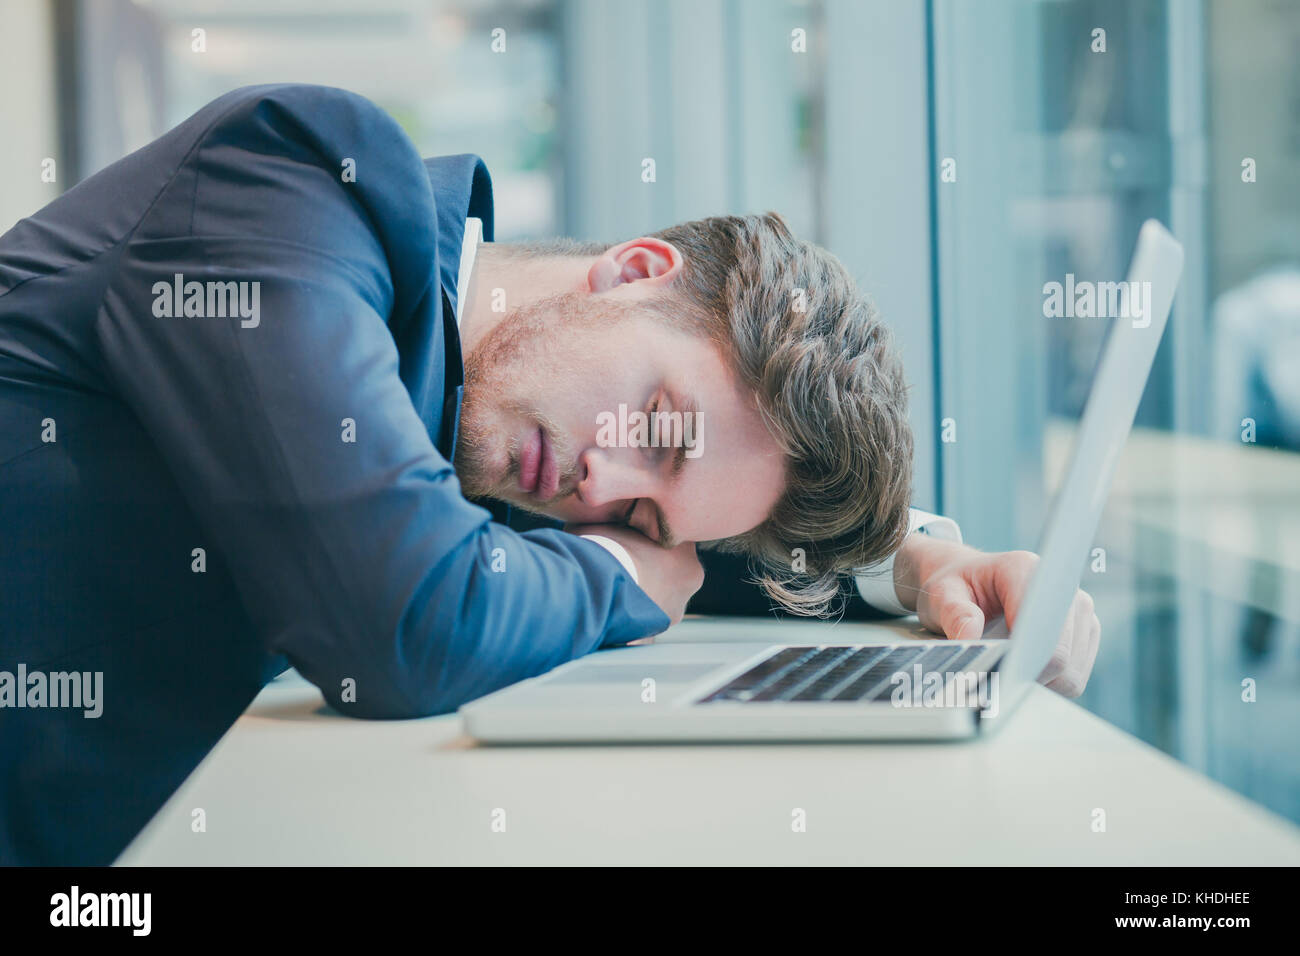 tired businessman sleeping near computer - Stock Image